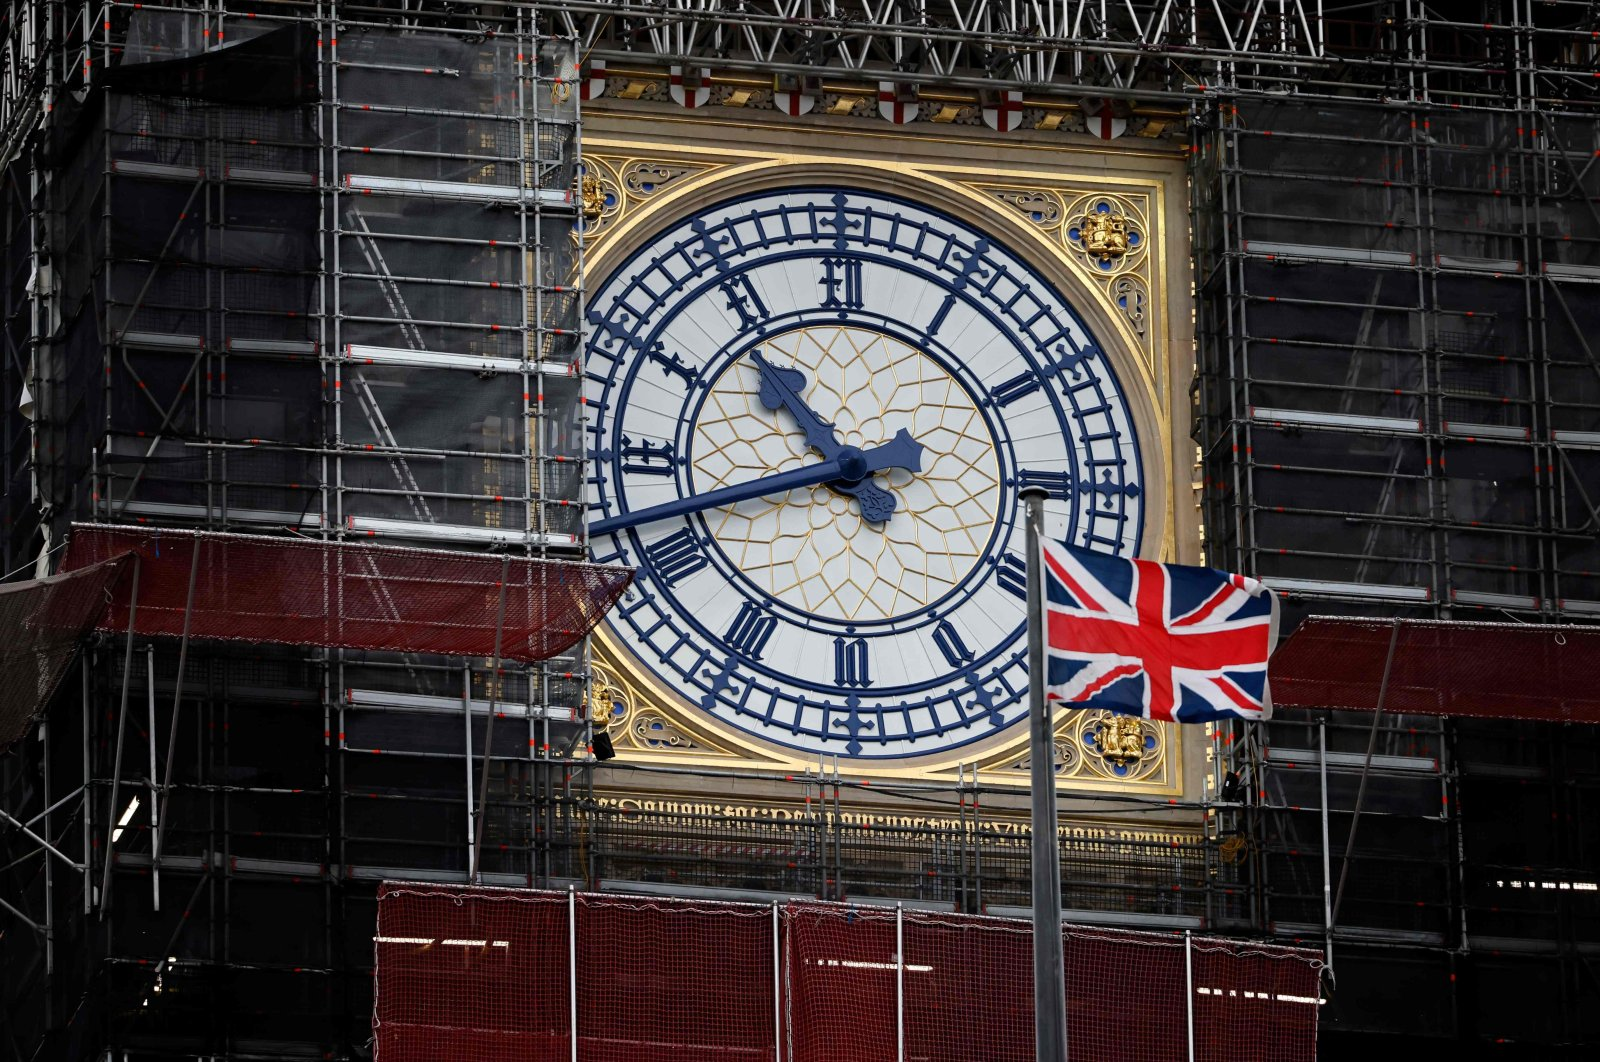 A U.K. flag flutters in the breeze in front of the clock face of the Elizabeth Tower, known after the bell Big Ben, in central London, Britain, Dec. 13, 2020. (AFP Photo)